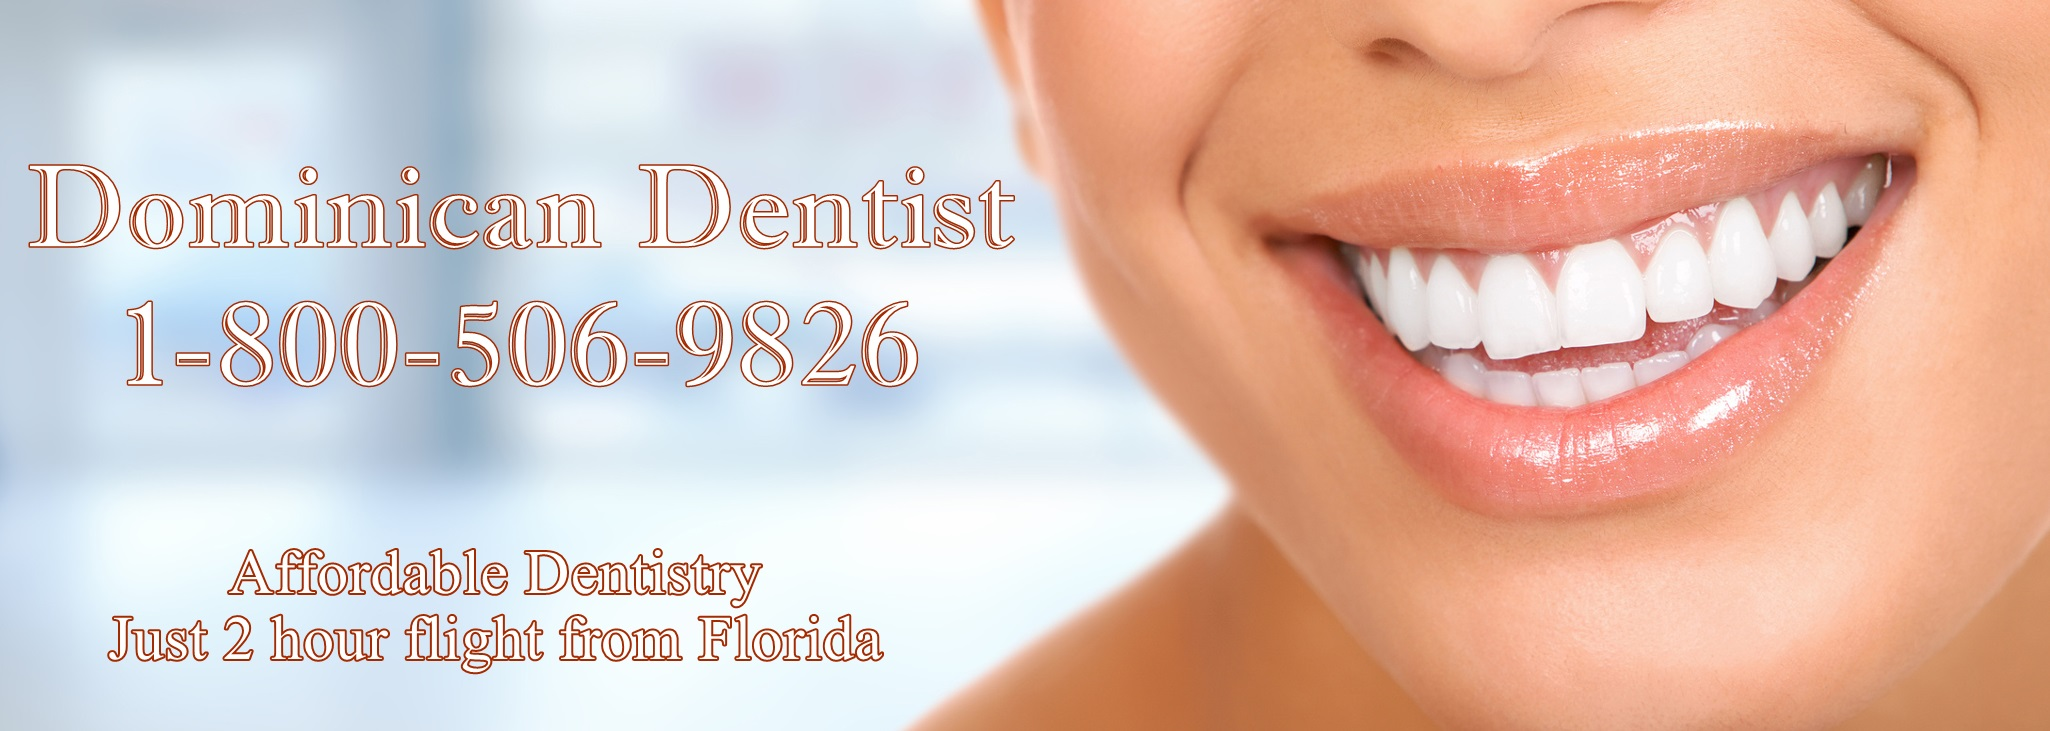 Out of Florida Dentist